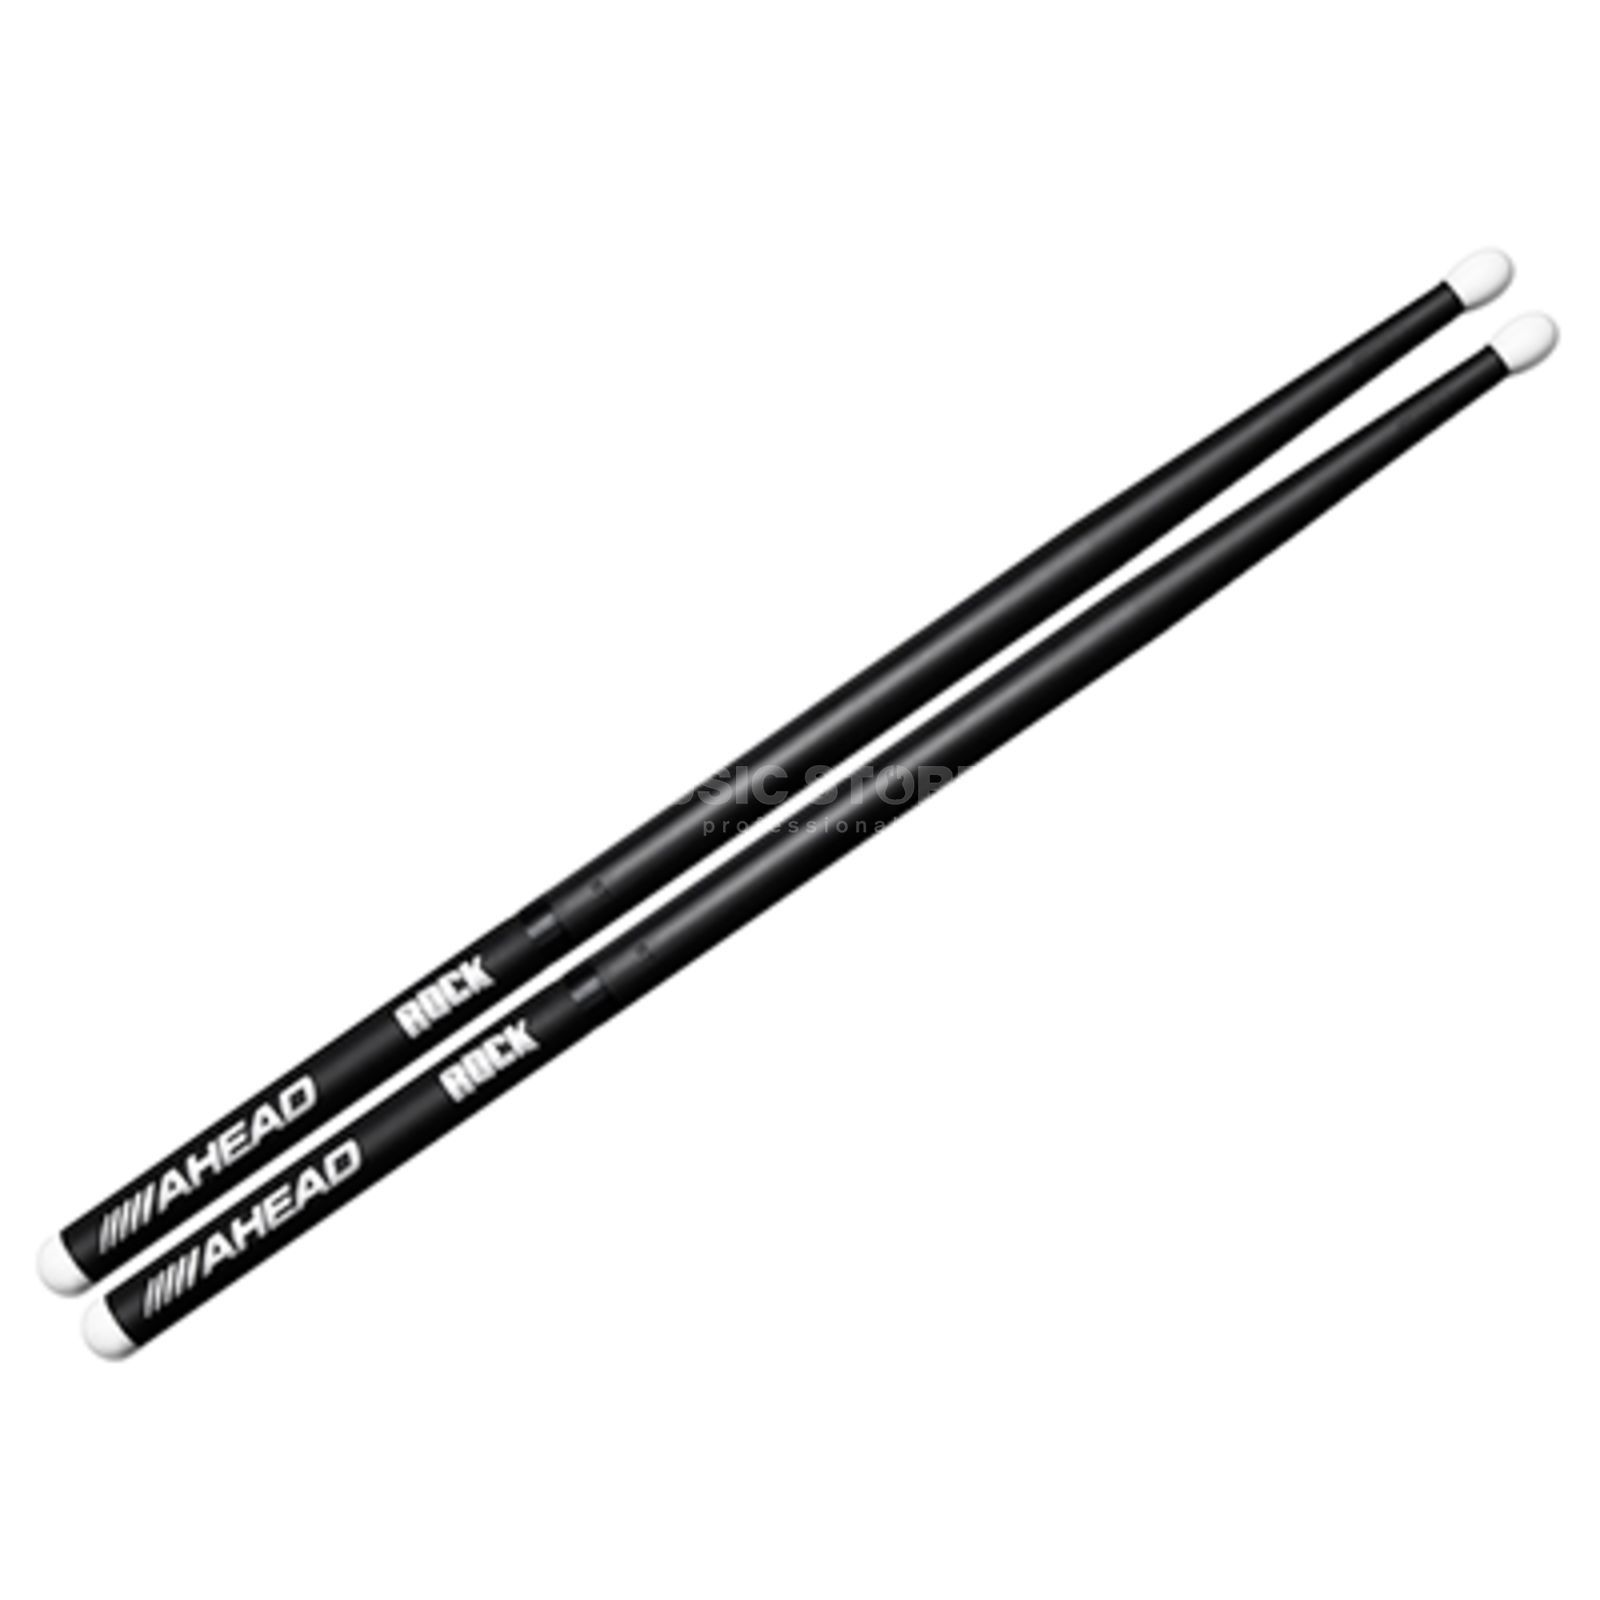 Ahead Sticks ROCK Aluminium Sticks Short Taper Produktbillede